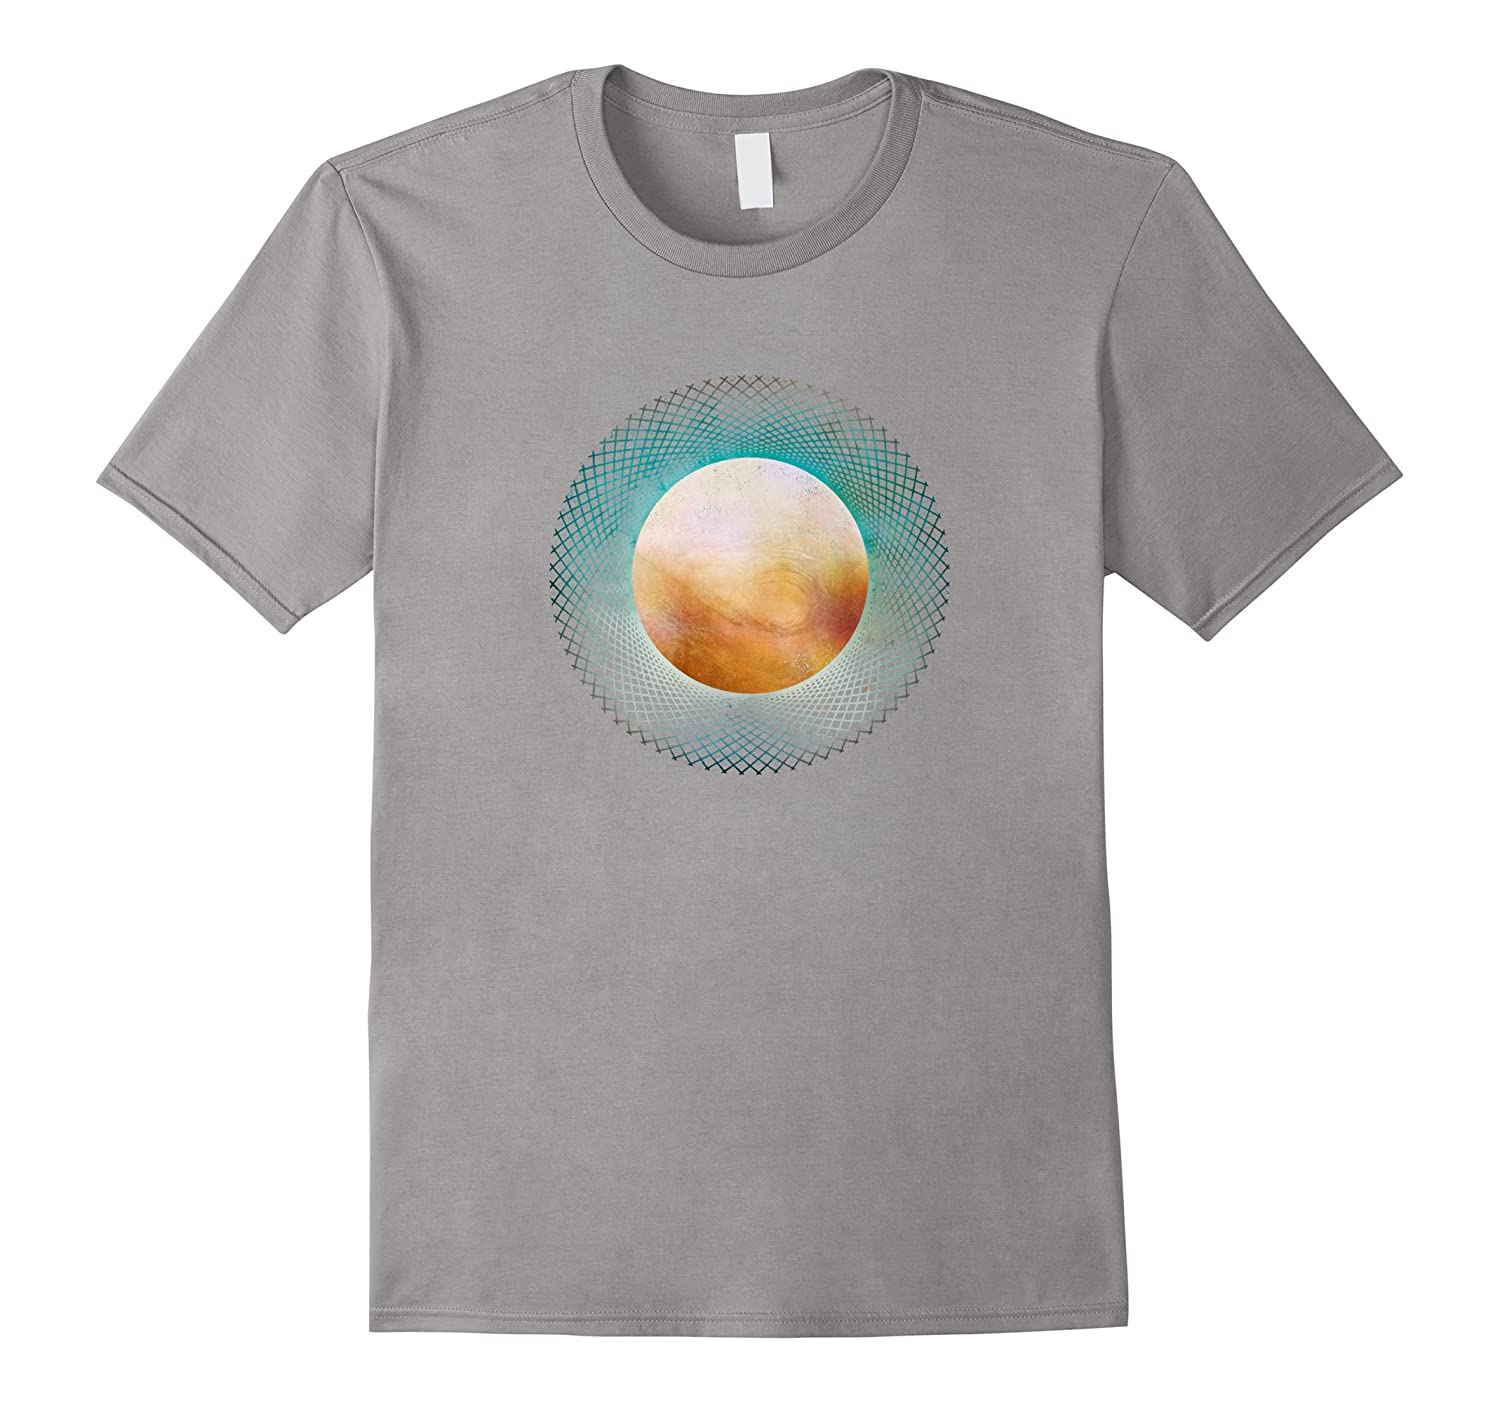 d216a8c4 Space Science Geometric T-Shirt - The Window-ANZ ⋆ Anztshirt